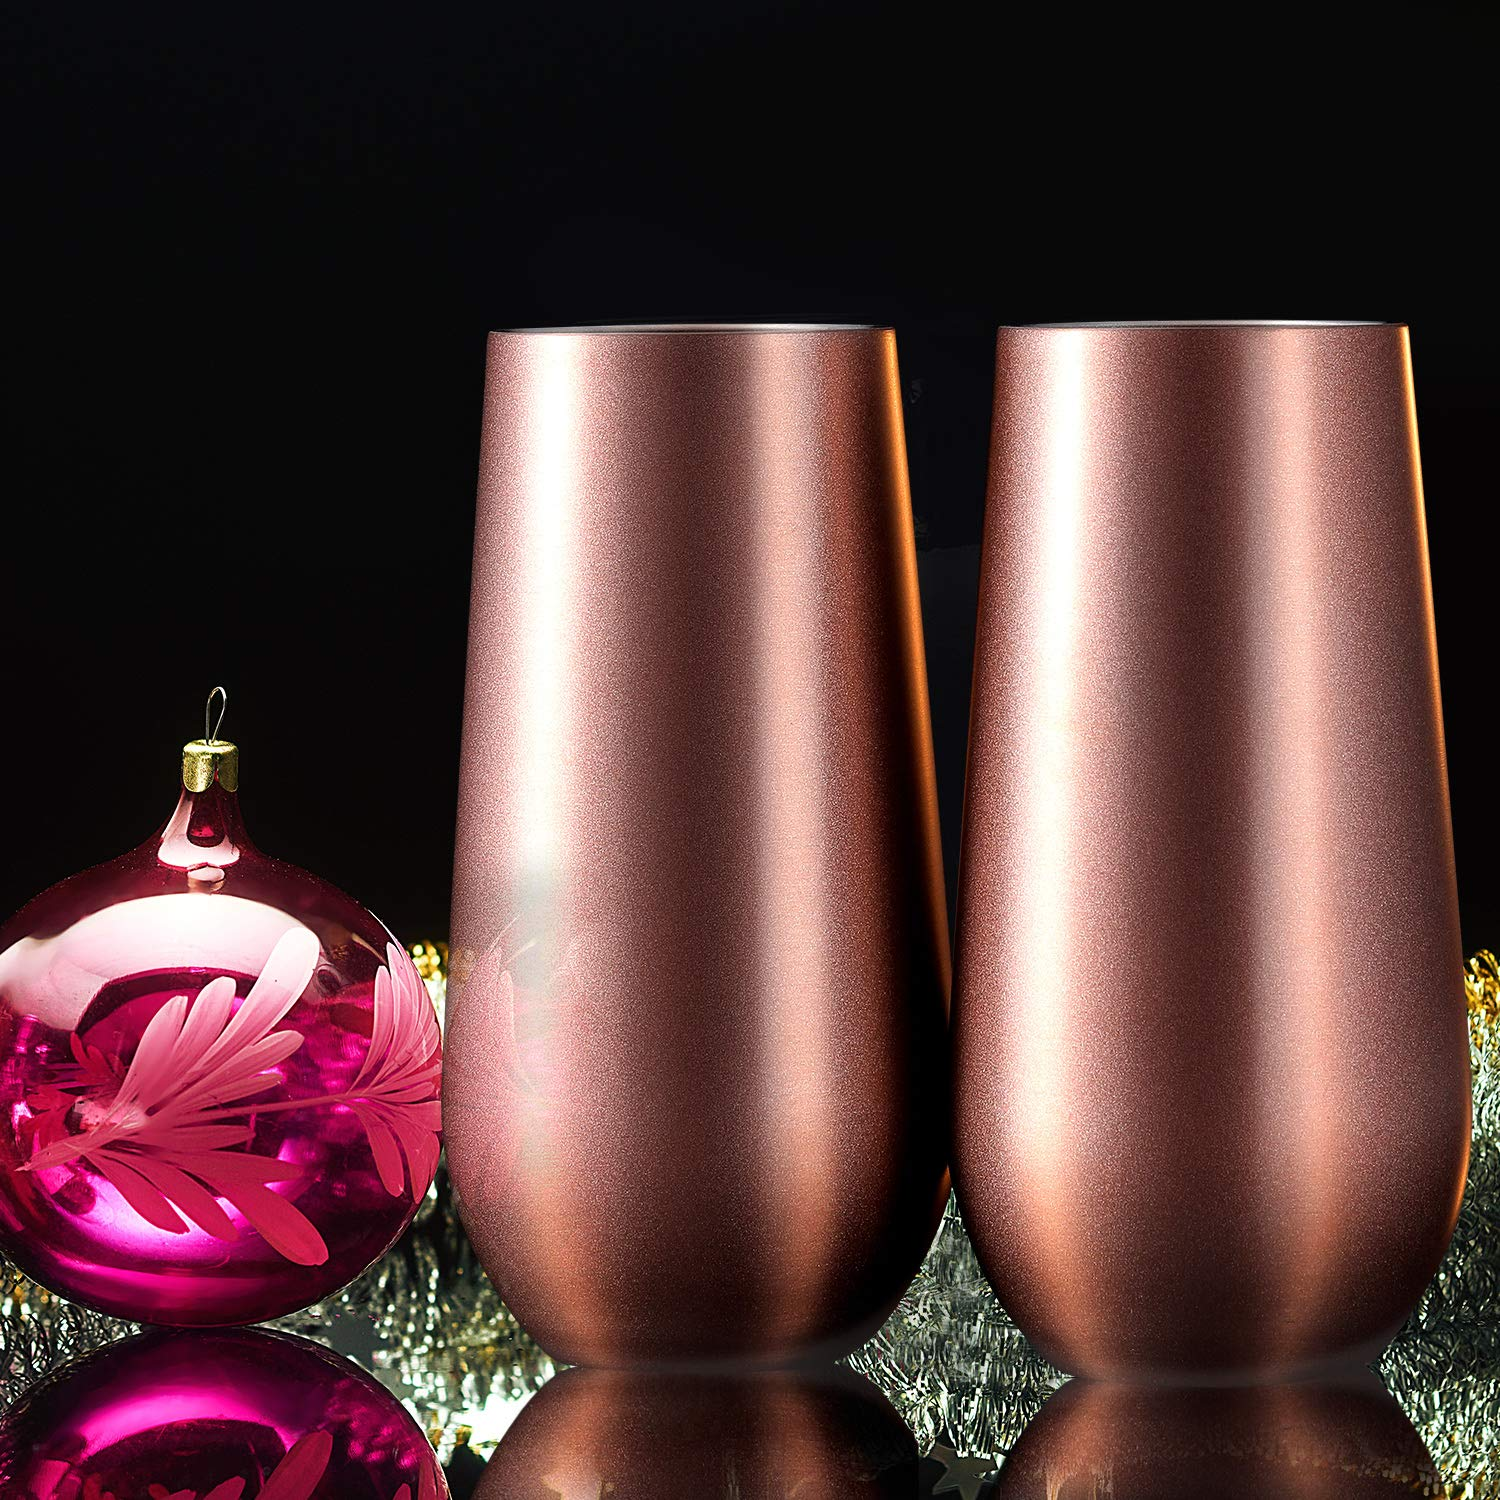 Skylety 4 Pack Stemless Double-insulated Wine Tumbler Champagne Flutes, 6 OZ Reusable Cocktail Cups Unbreakable Champagne Toasting Glasses with Lids (Rose Gold) by Skylety (Image #2)